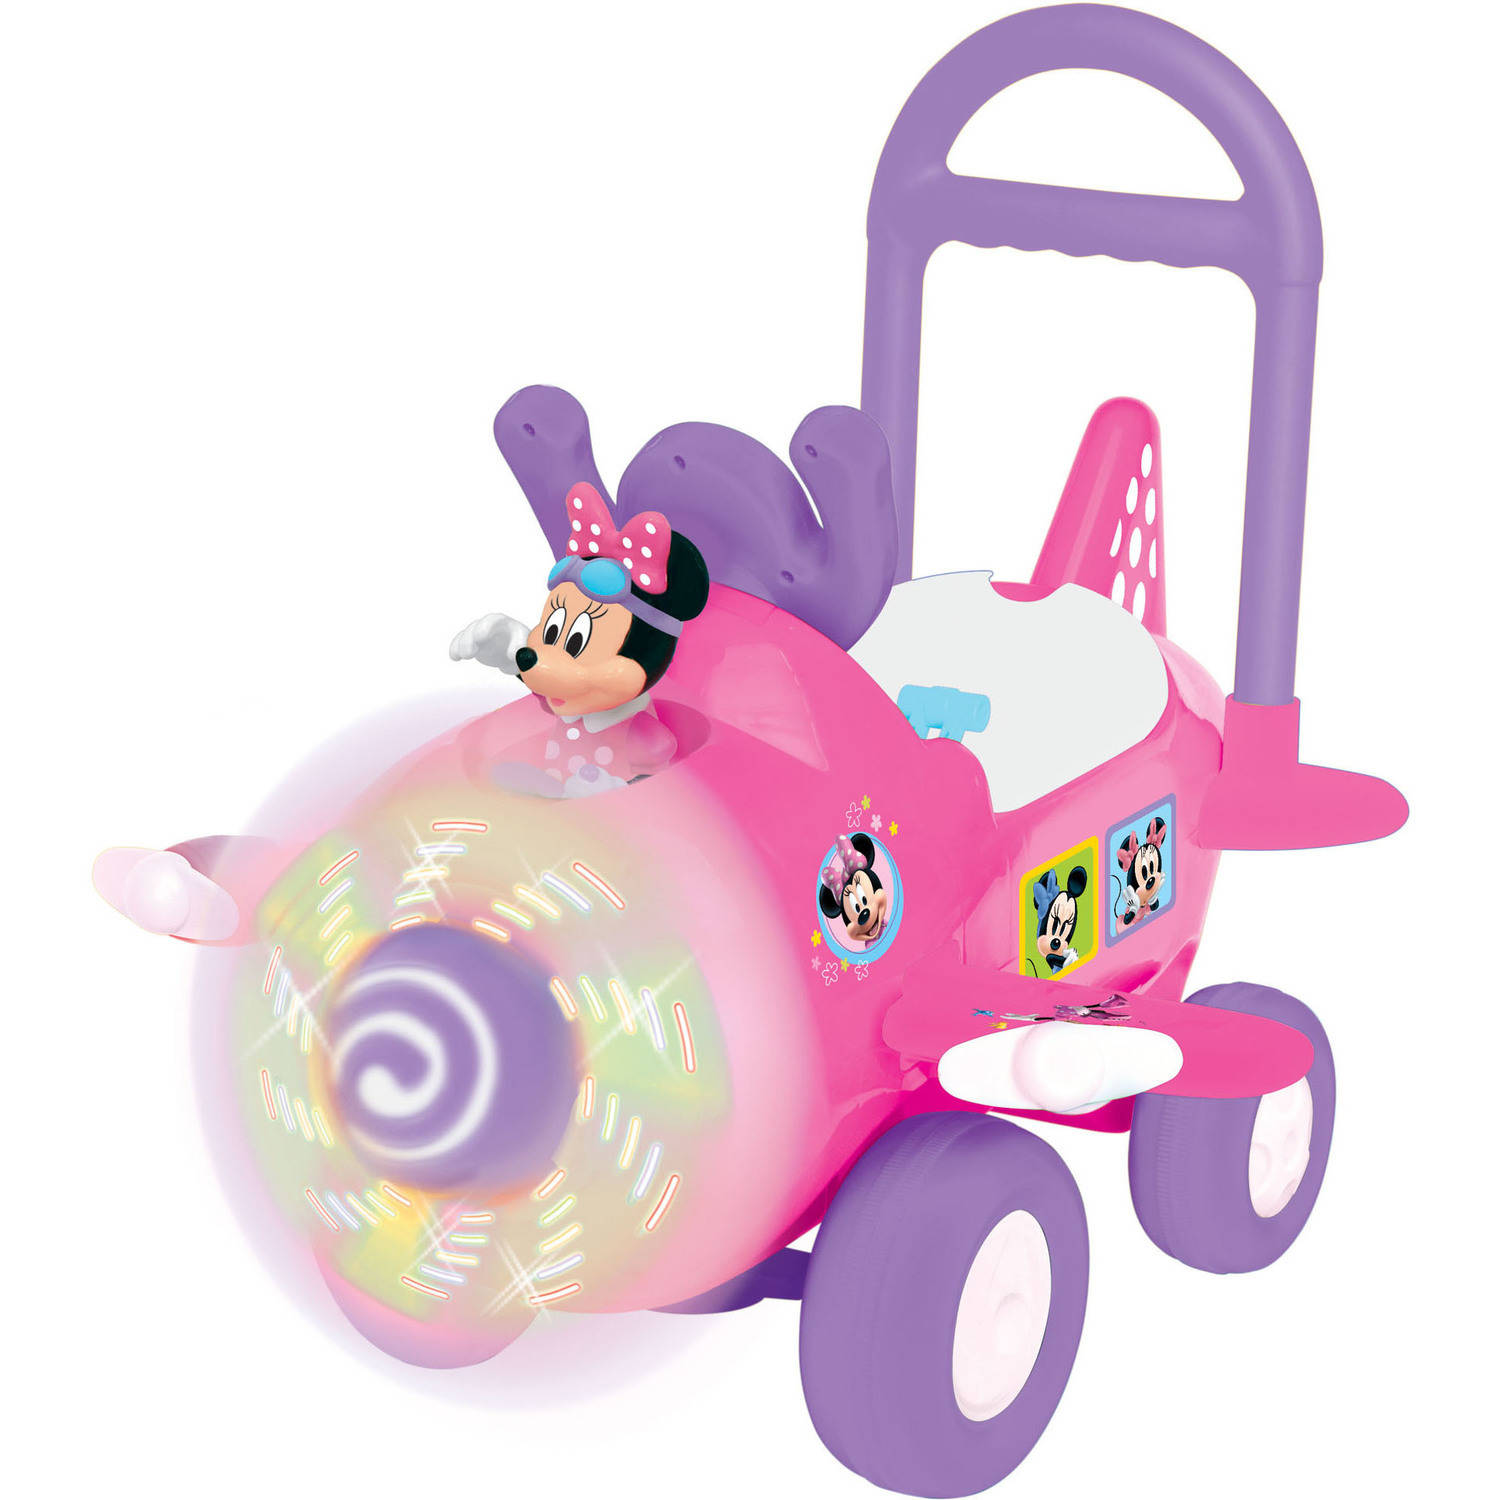 Minnie Mouse Airplane